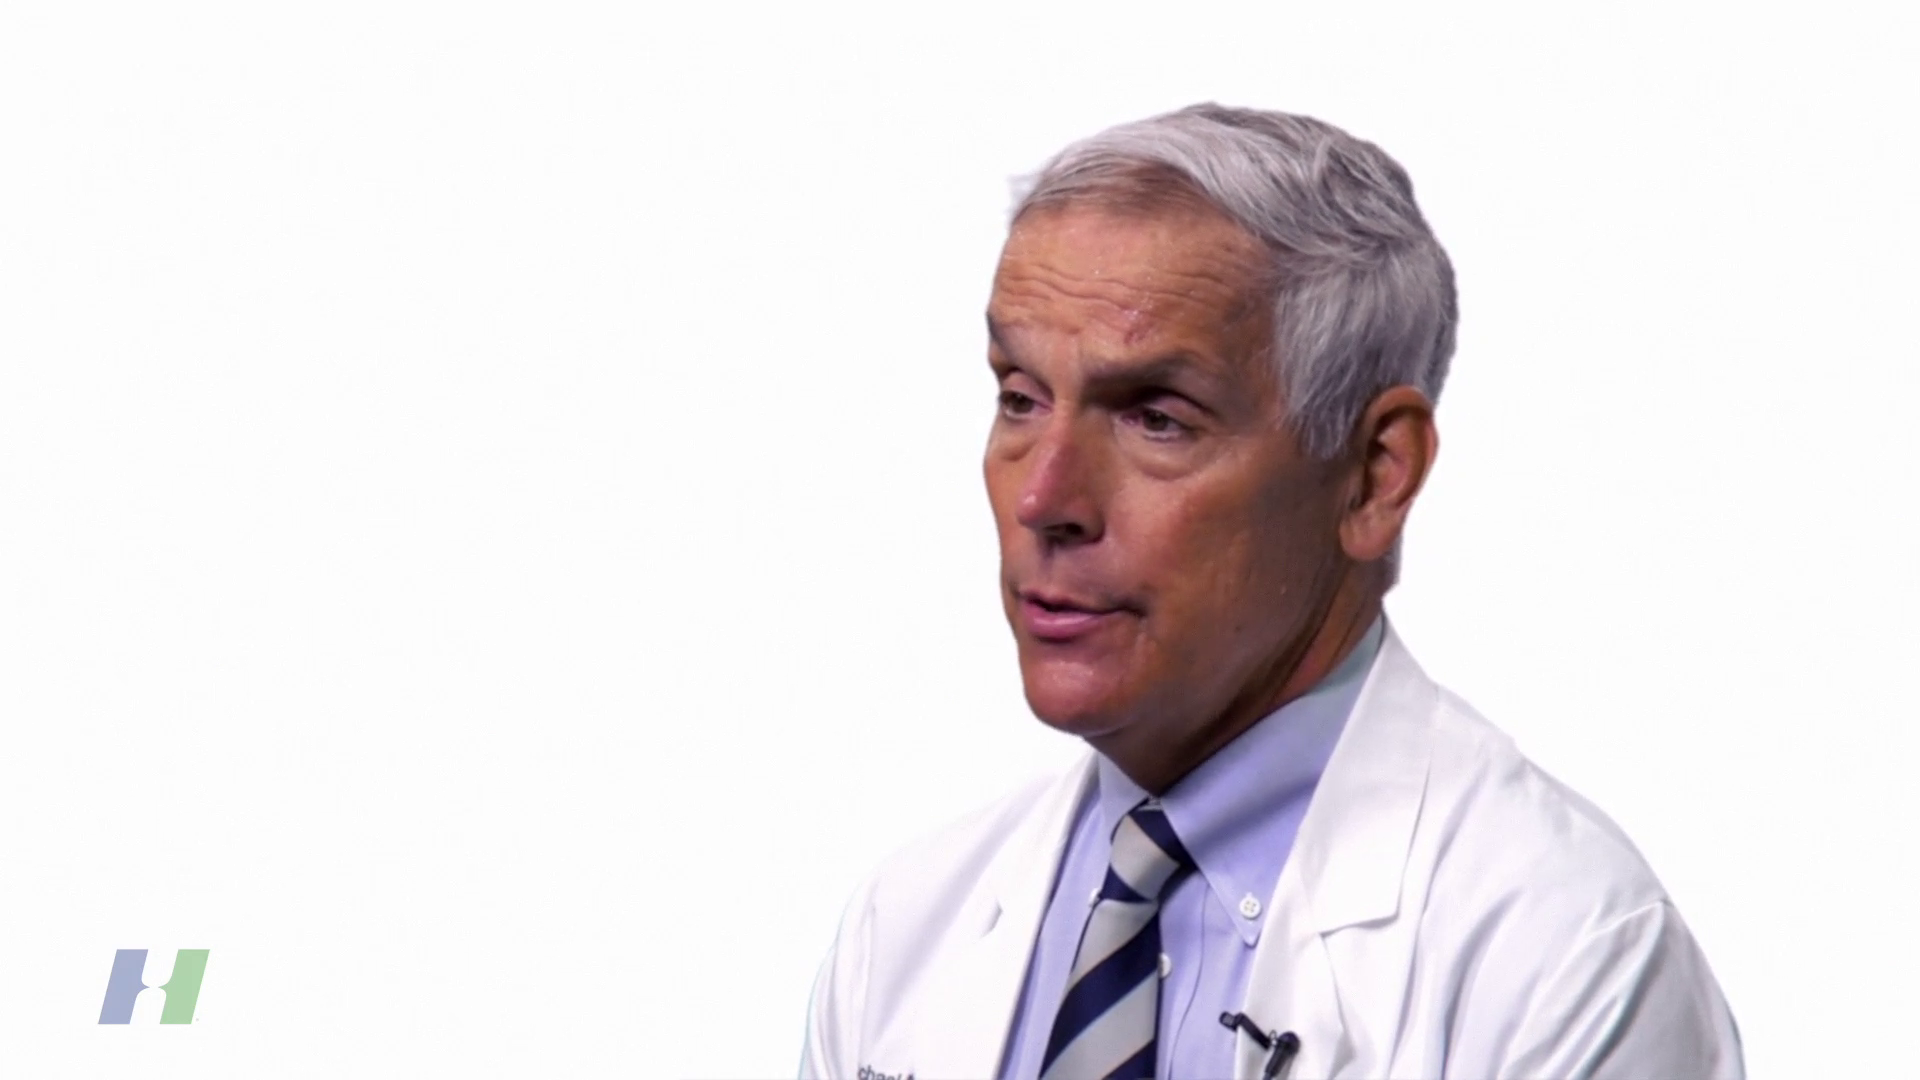 Dr. Kelly talks about his practice